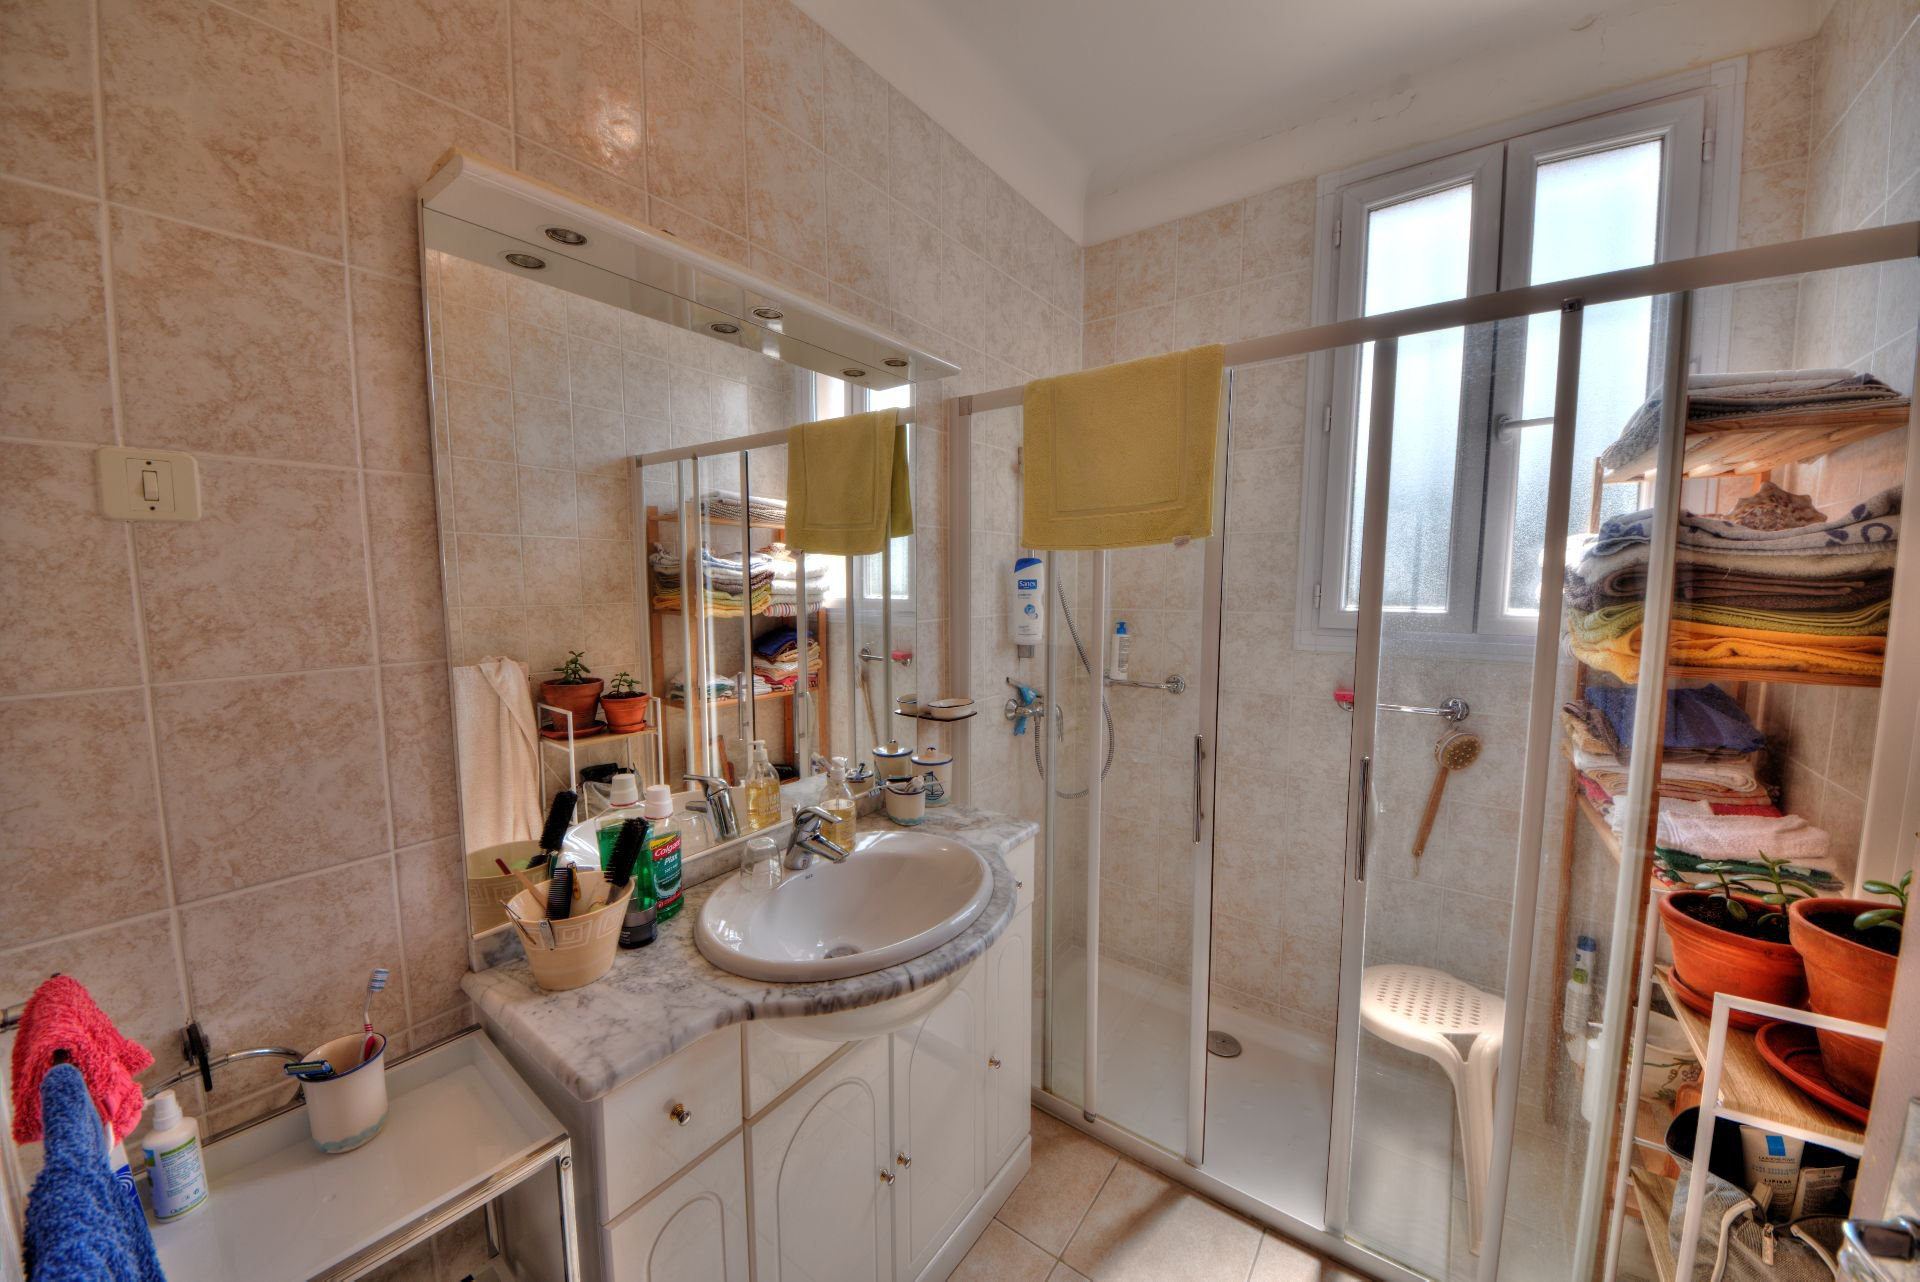 Shower room of the House raised one floor on garden level, plot of 5000 m² divisible, Aups, Provence, Verdon